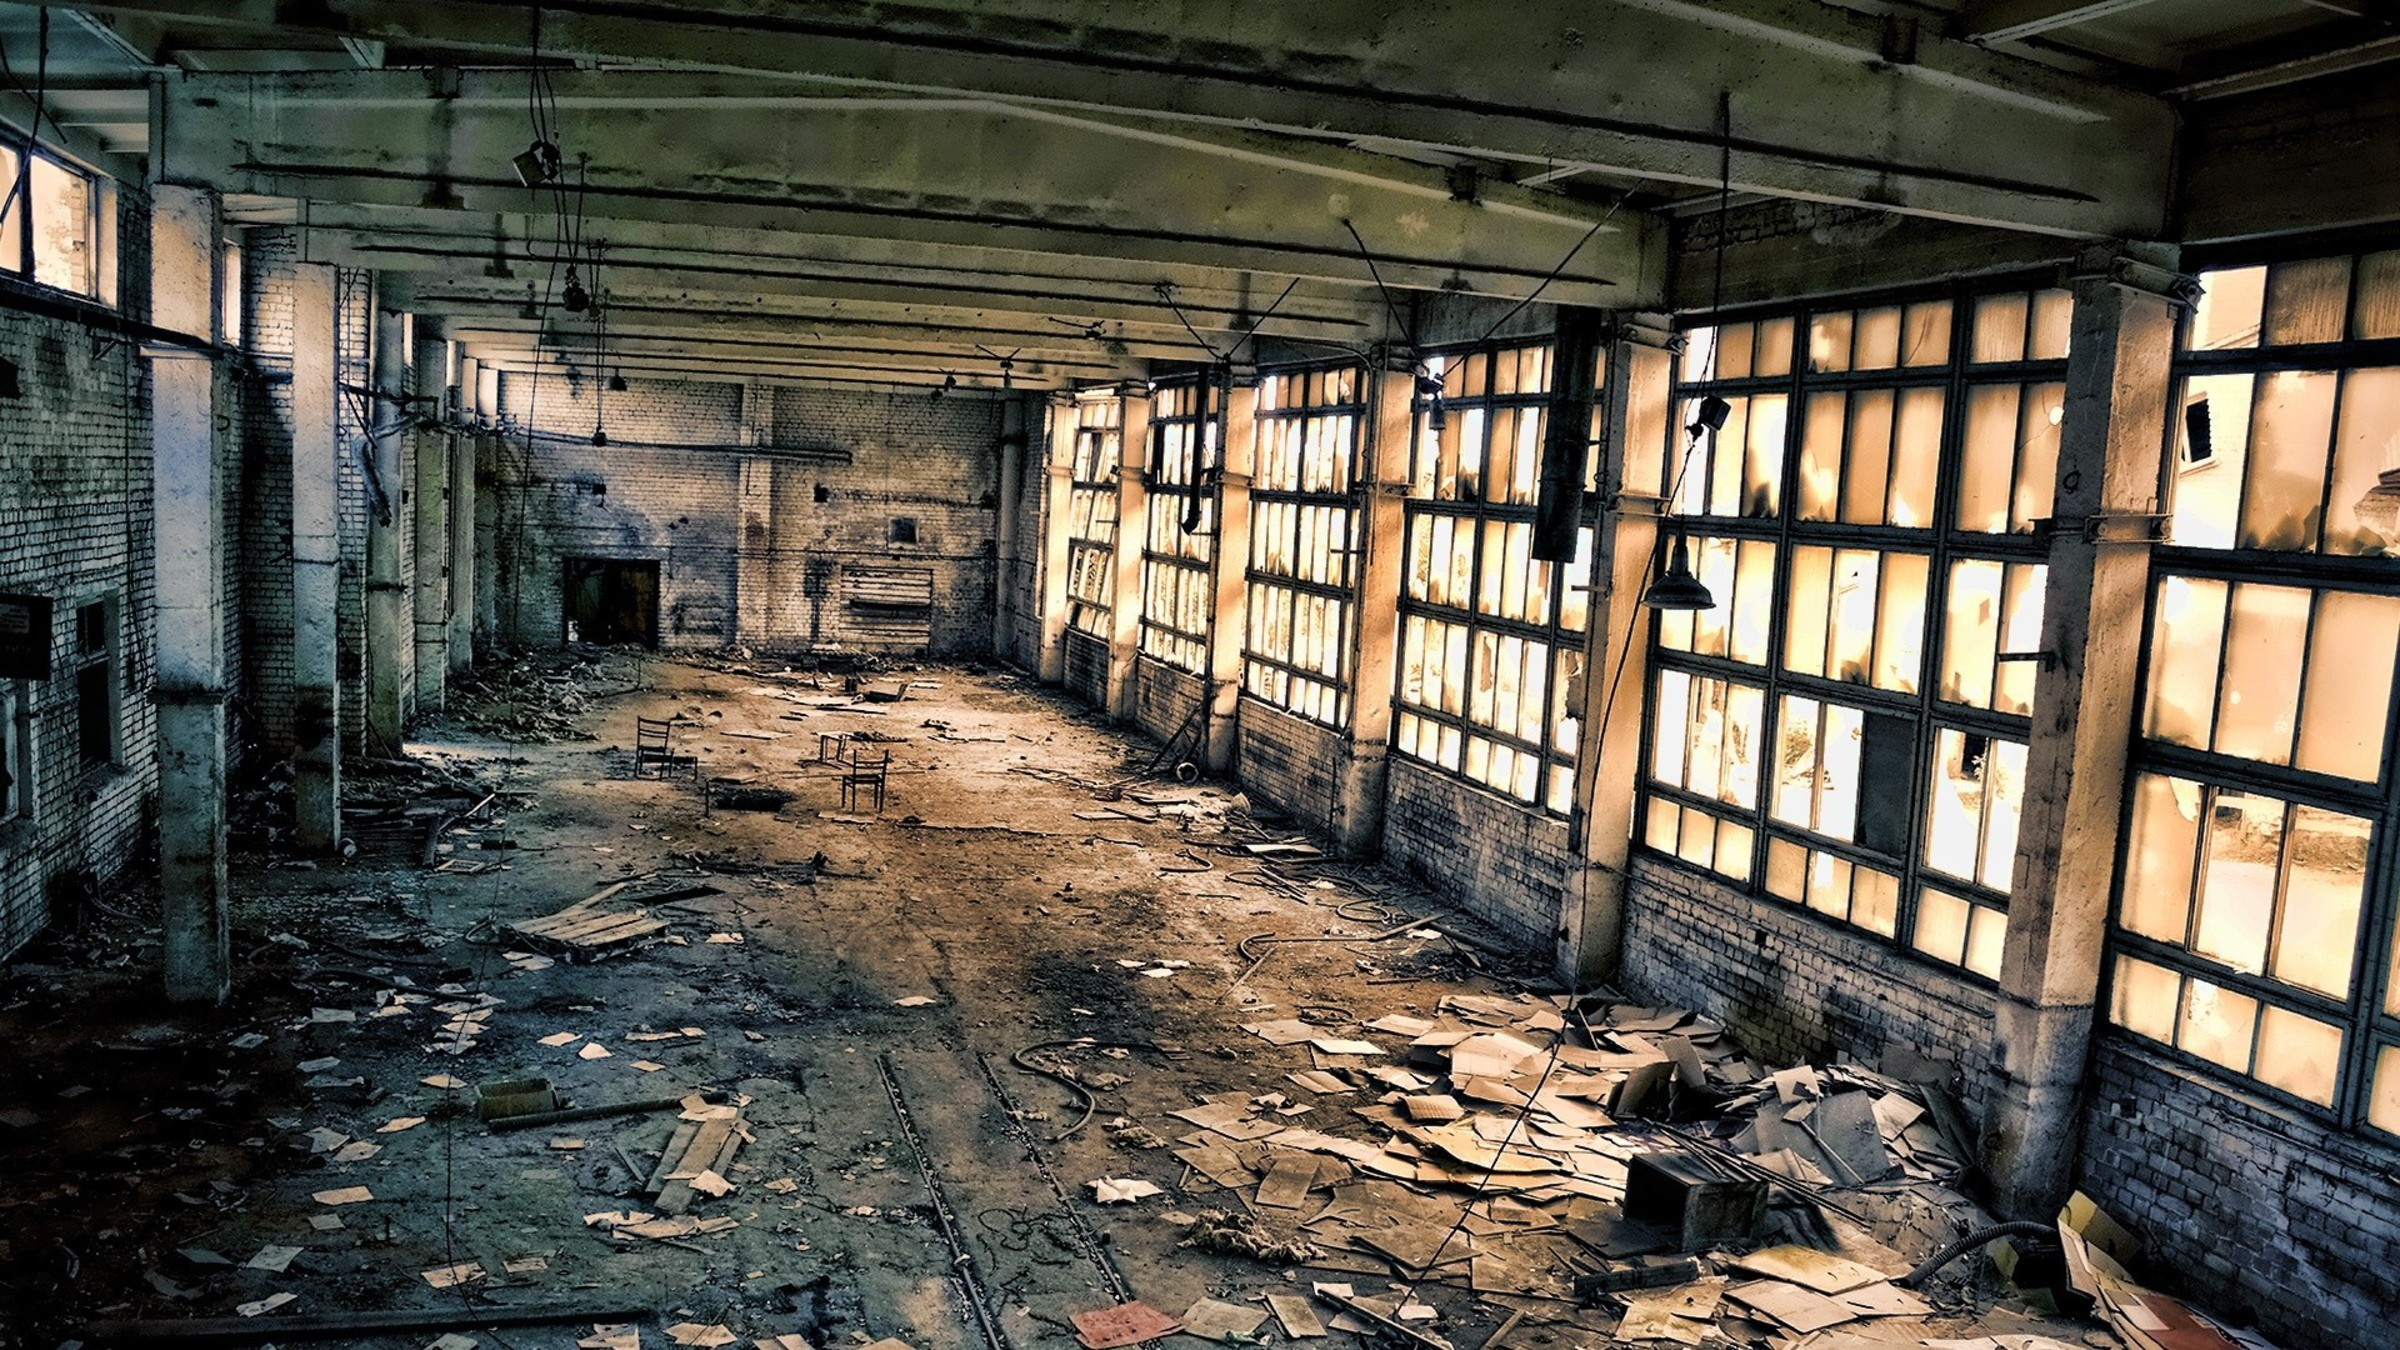 Abandoned warehouse wallpaper 7024 pc for Wallpaper retailers